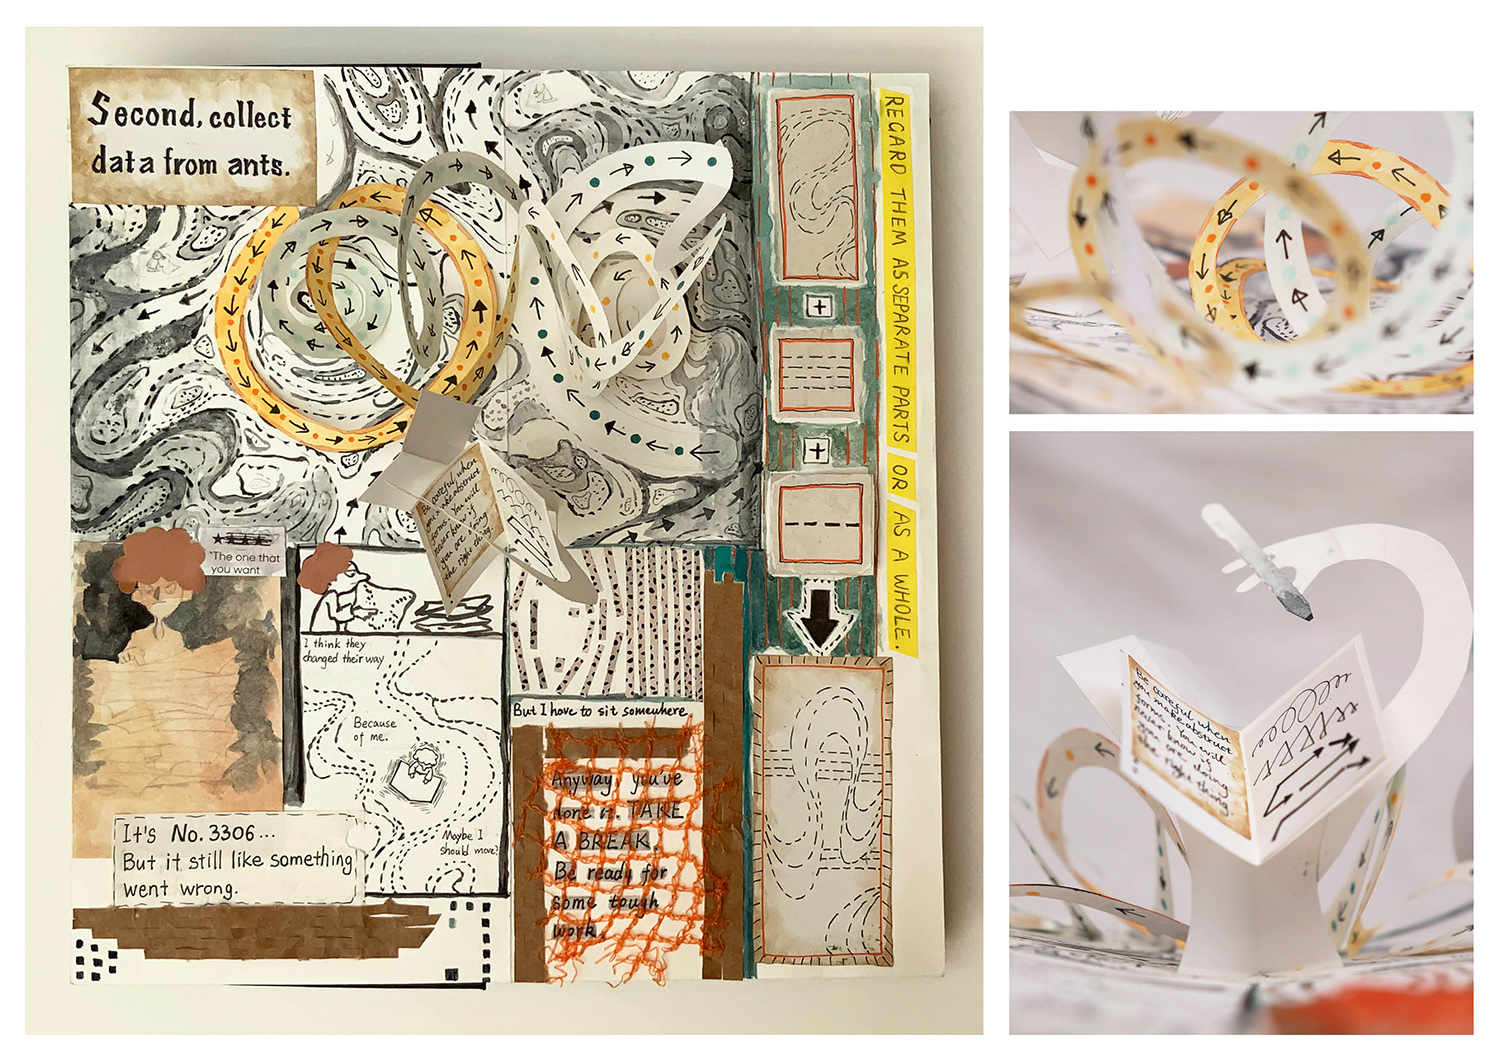 Photos of handmade illustrated pop-up book